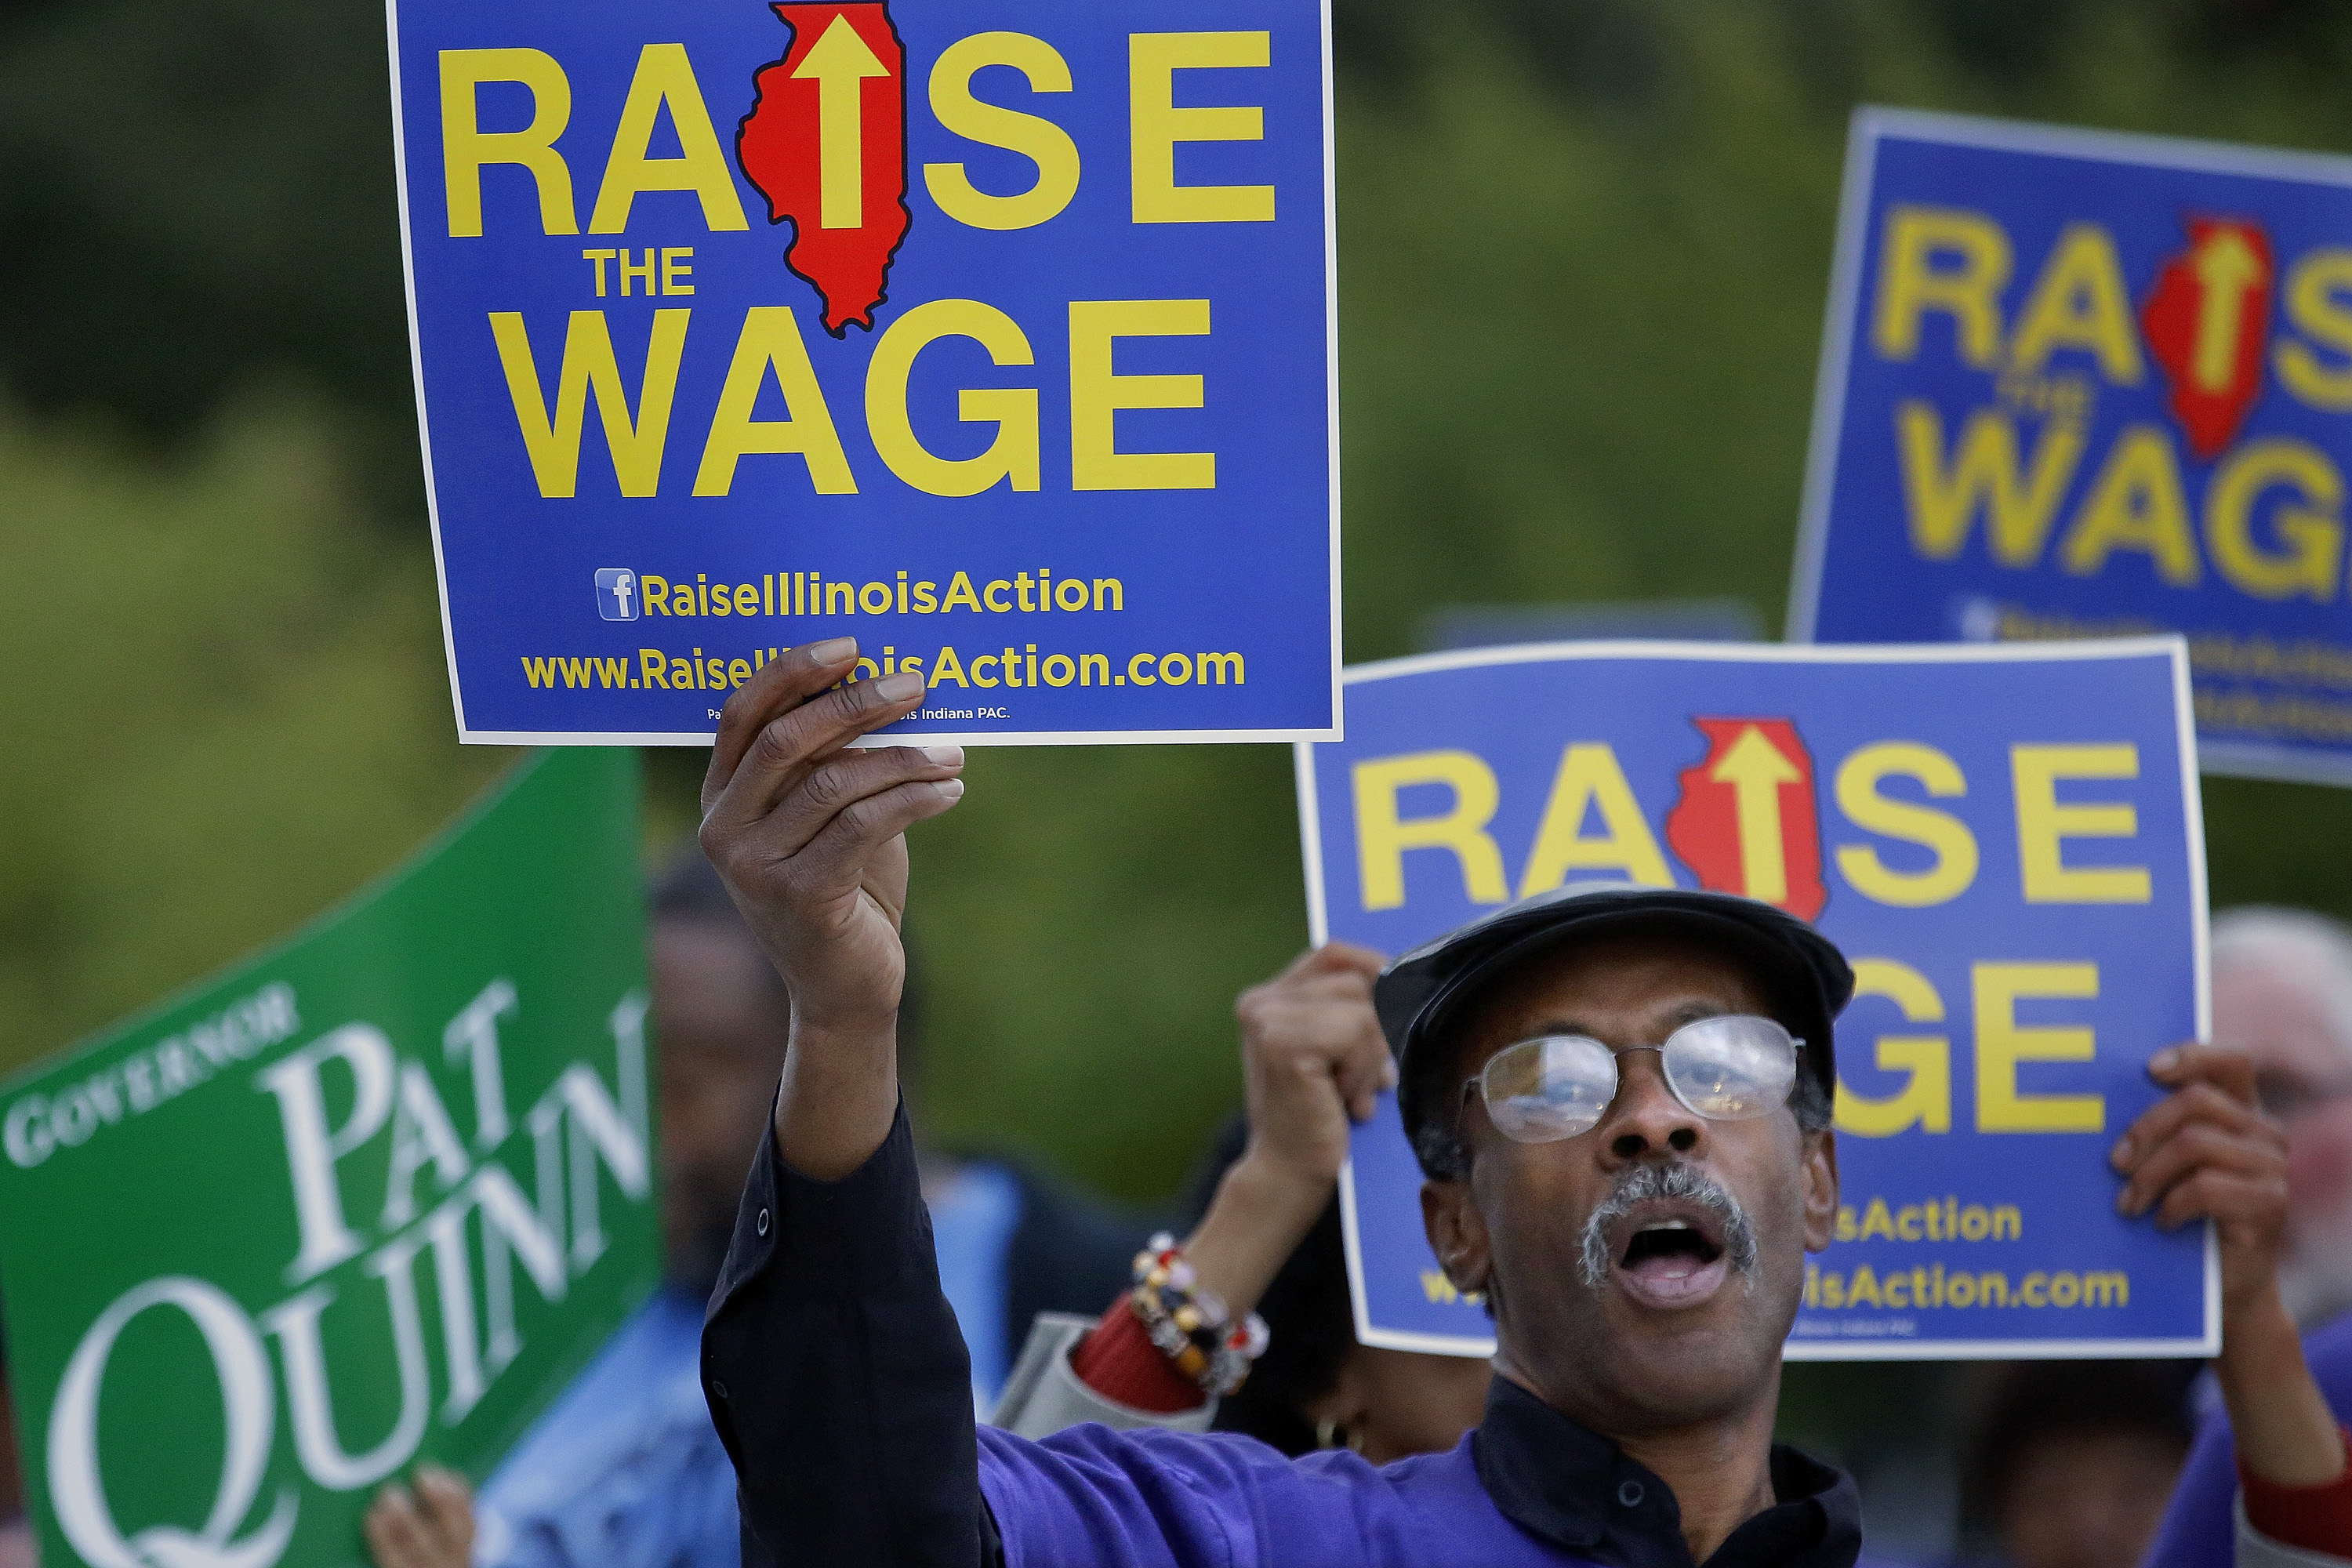 Minimum wage supporters rally outside an Illinois gubernatorial debate on Oct. 9, 2014.